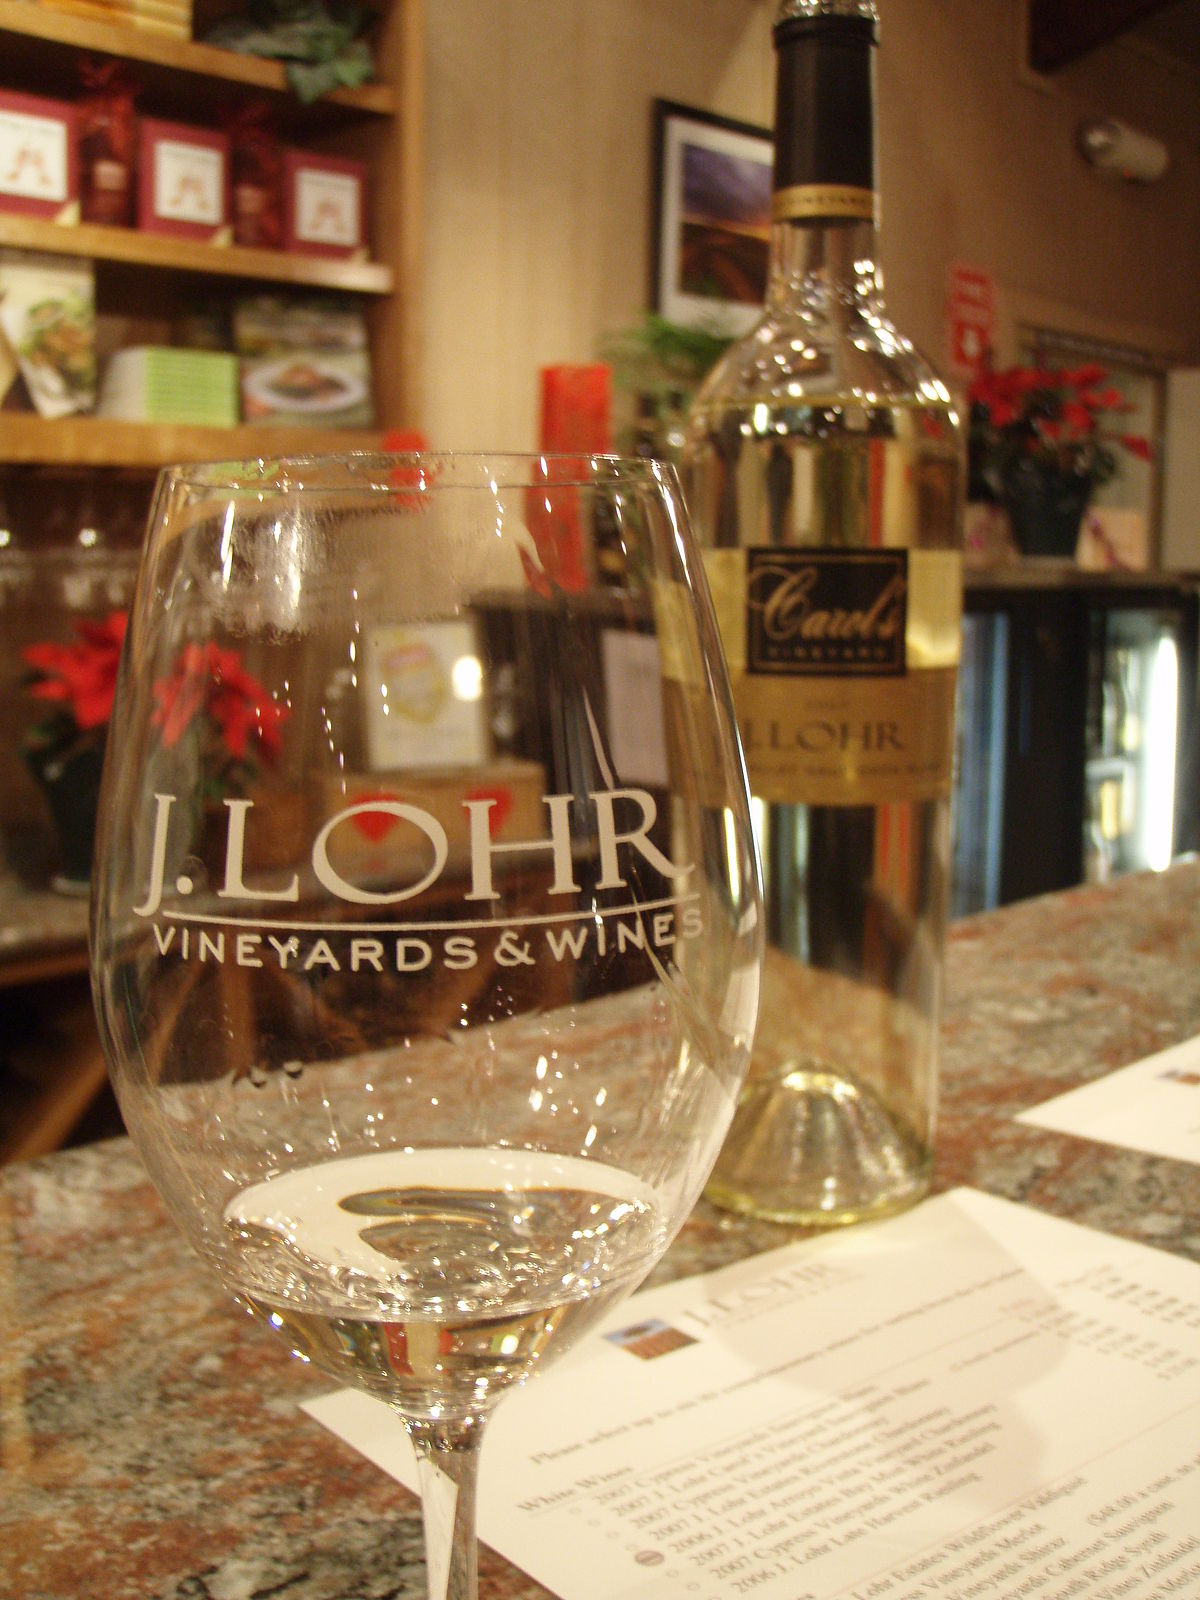 J Lohr Vineyards And Wines Wikipedia